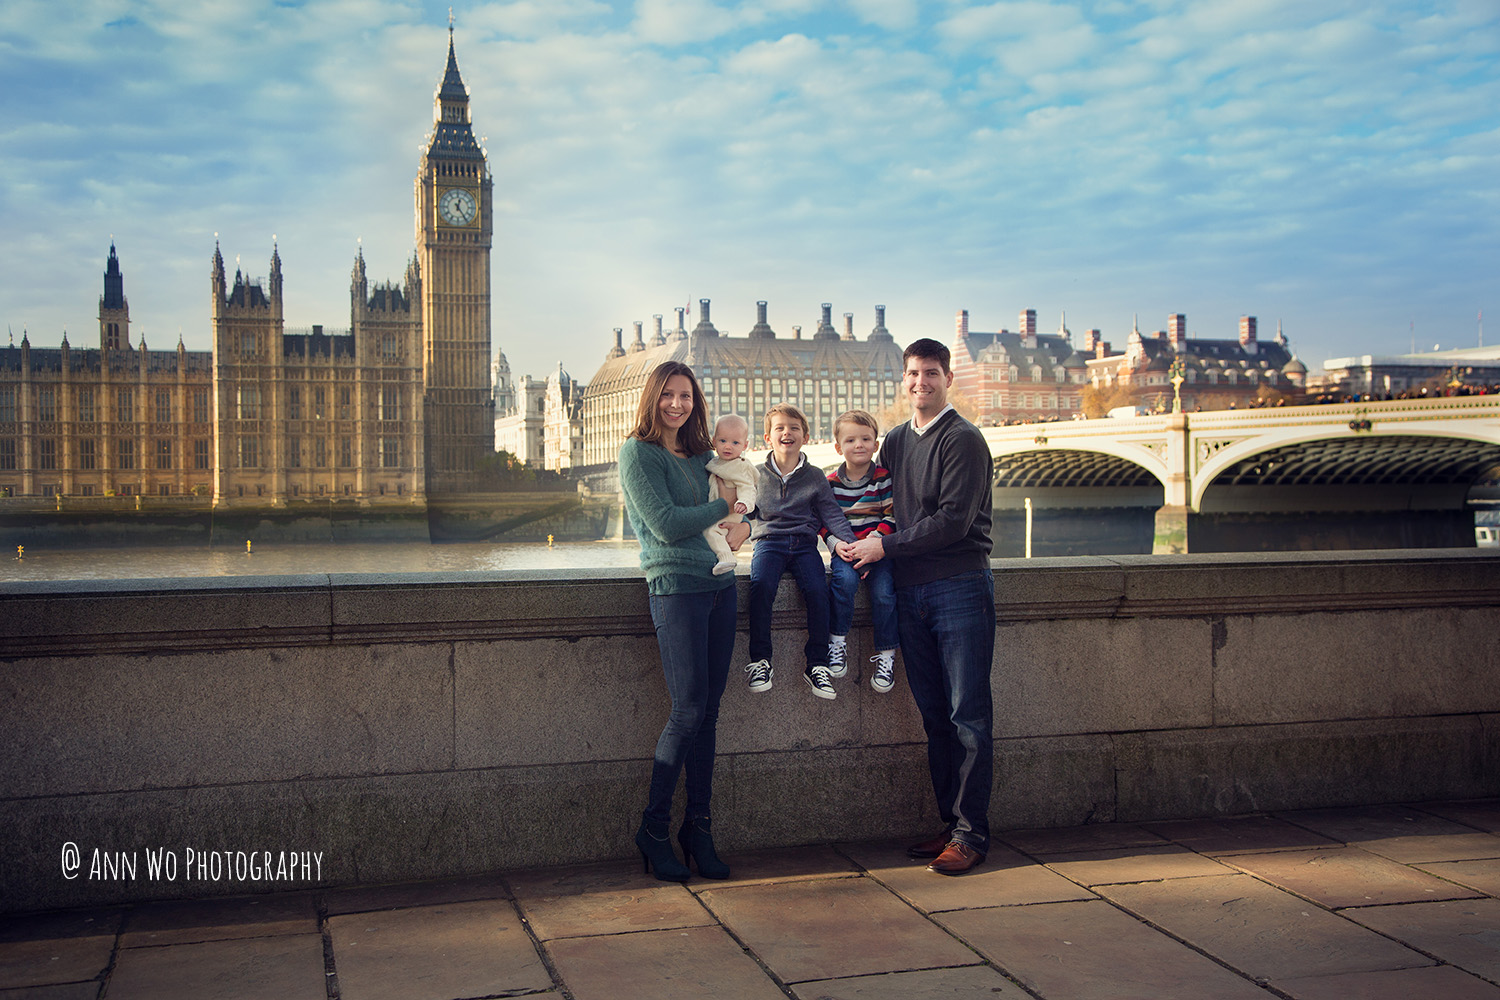 family lifestyle photography session in Central London